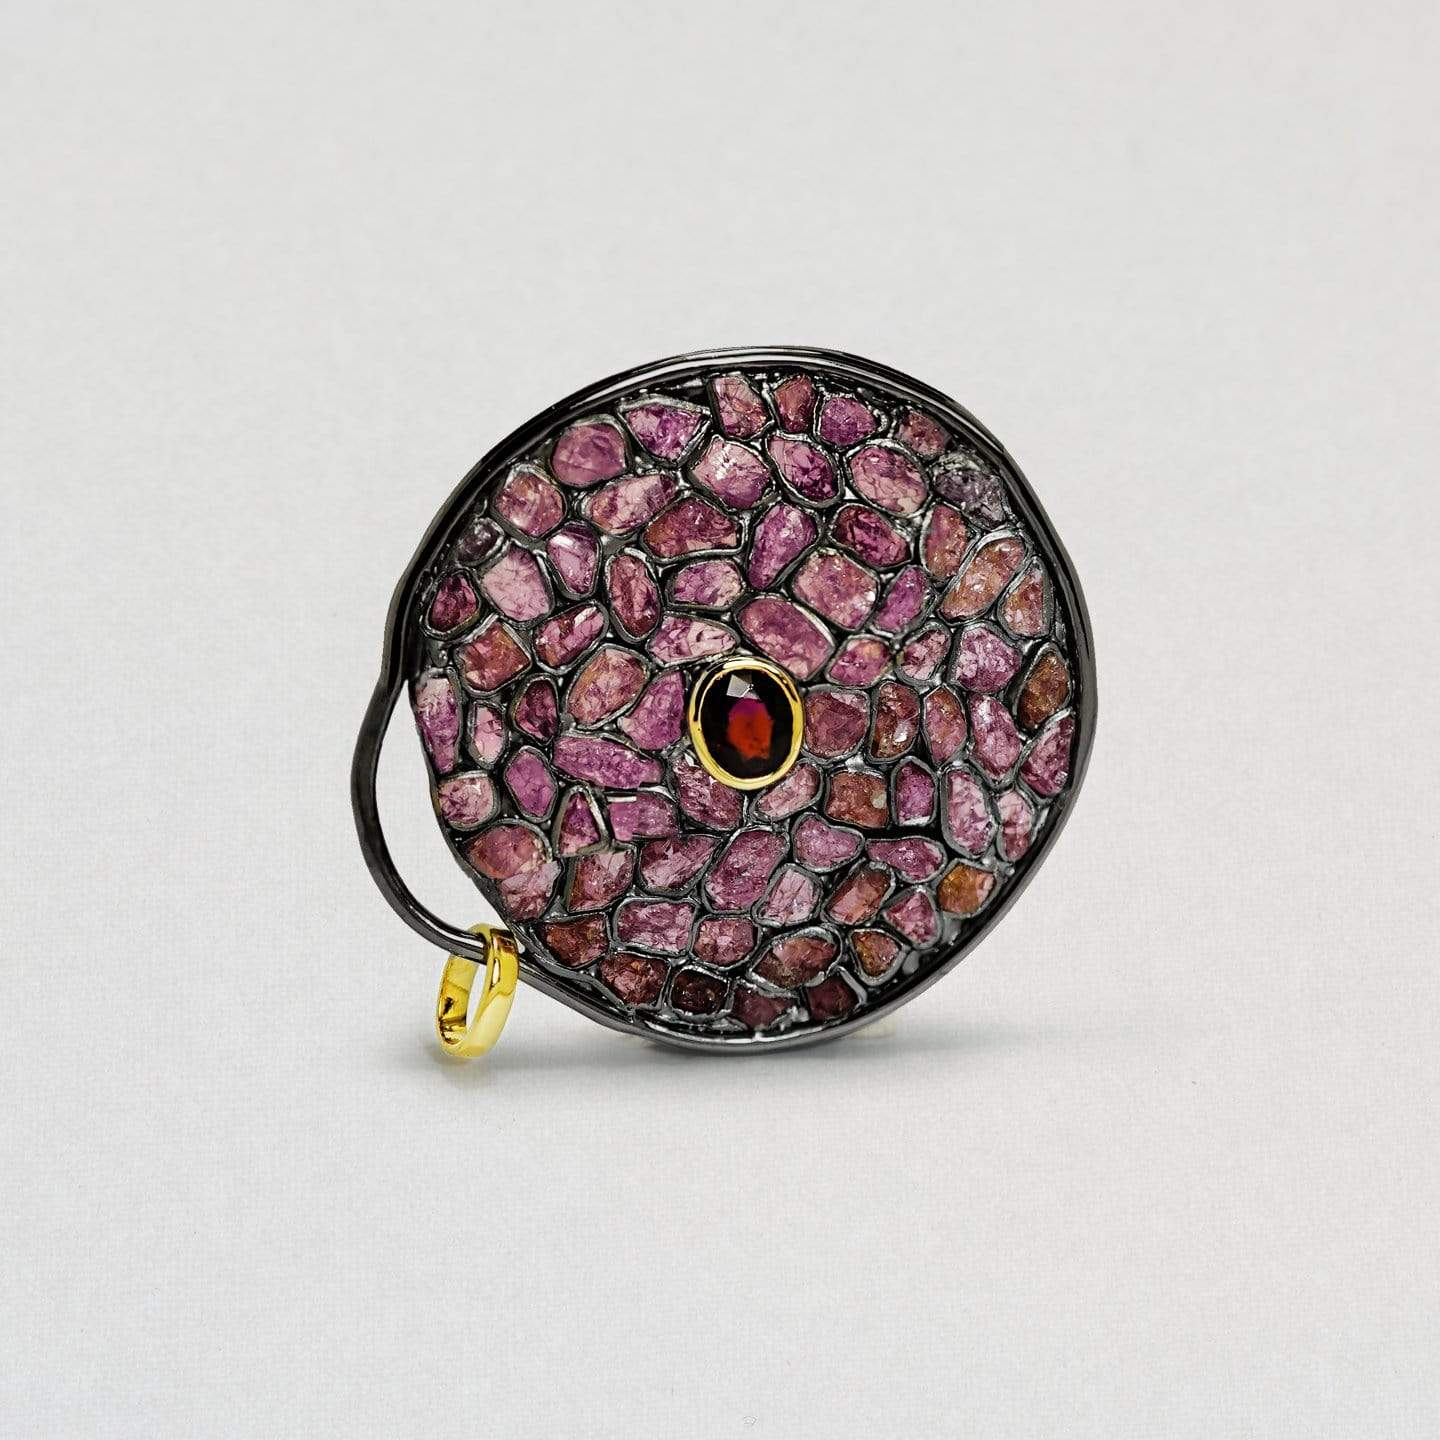 Jocasta Pendant, Exclusive, Garnet, Gold, gray, Rhodium, Ruby, spo-disabled, StoneColor:PinkRuby, Style:Statement, Type:StainedGlass Pendant